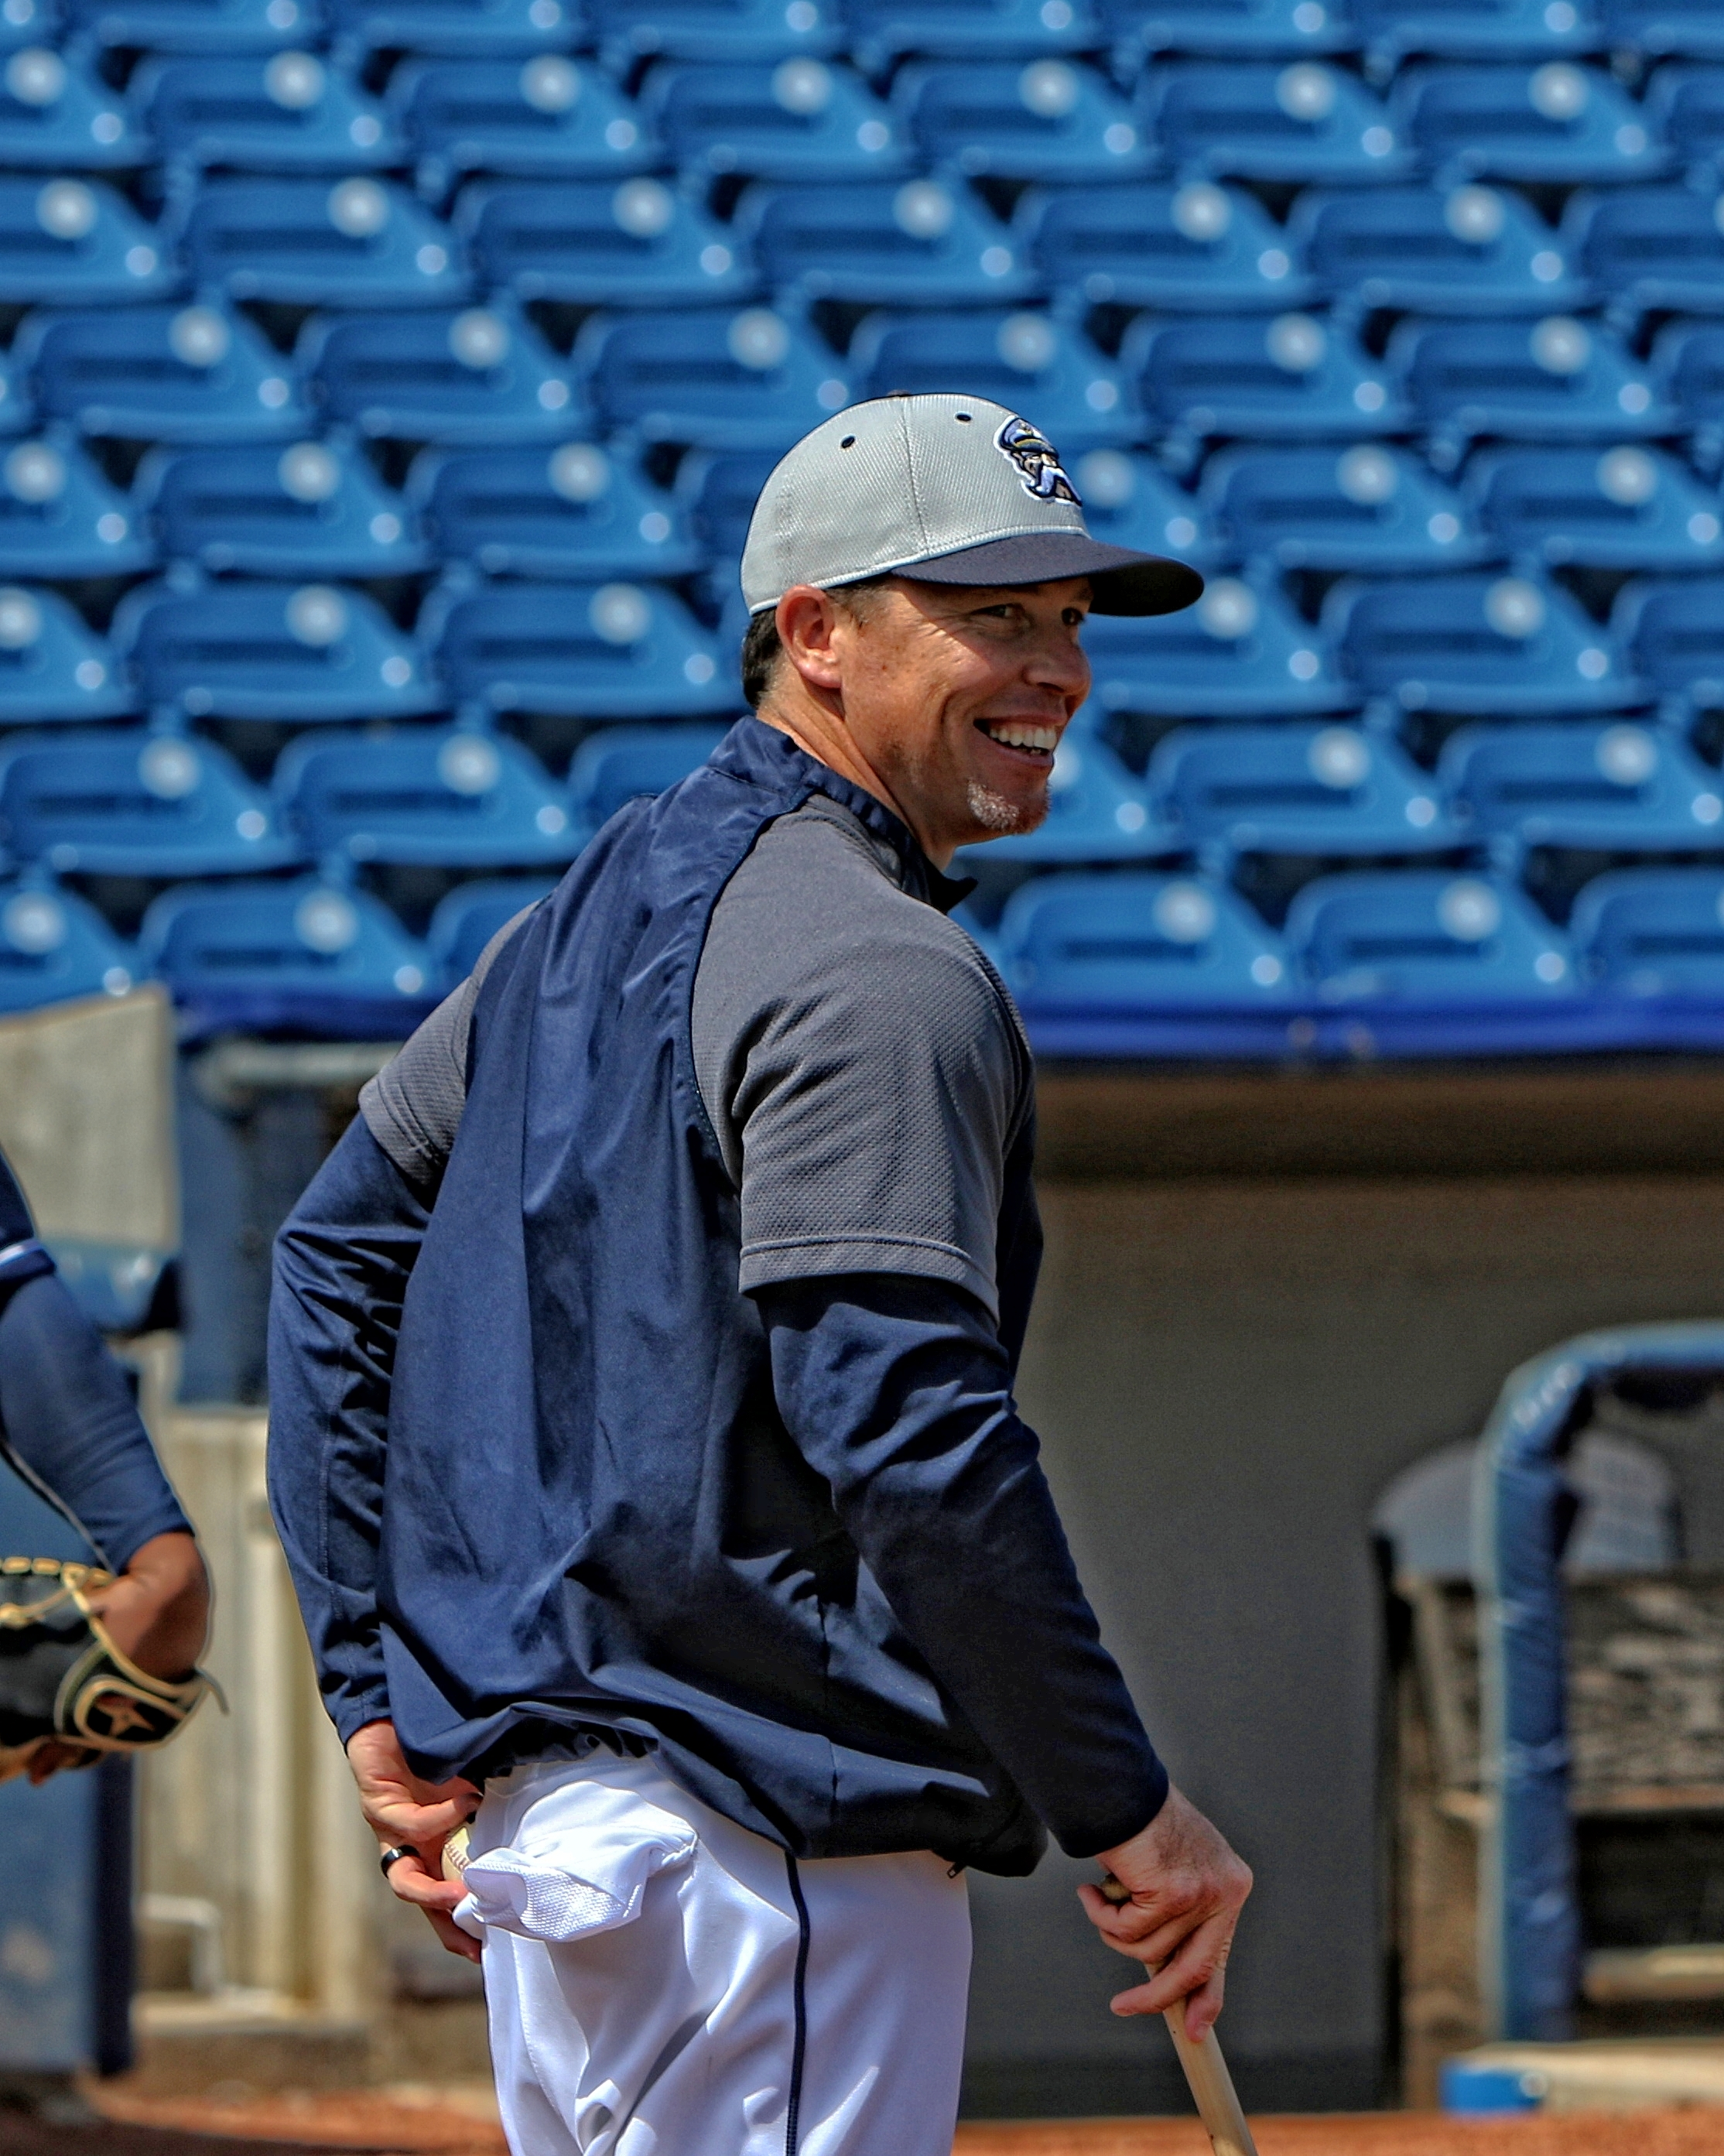 Shaun Larkin joins the Dodgers organization after coaching three years in the Indians organization.